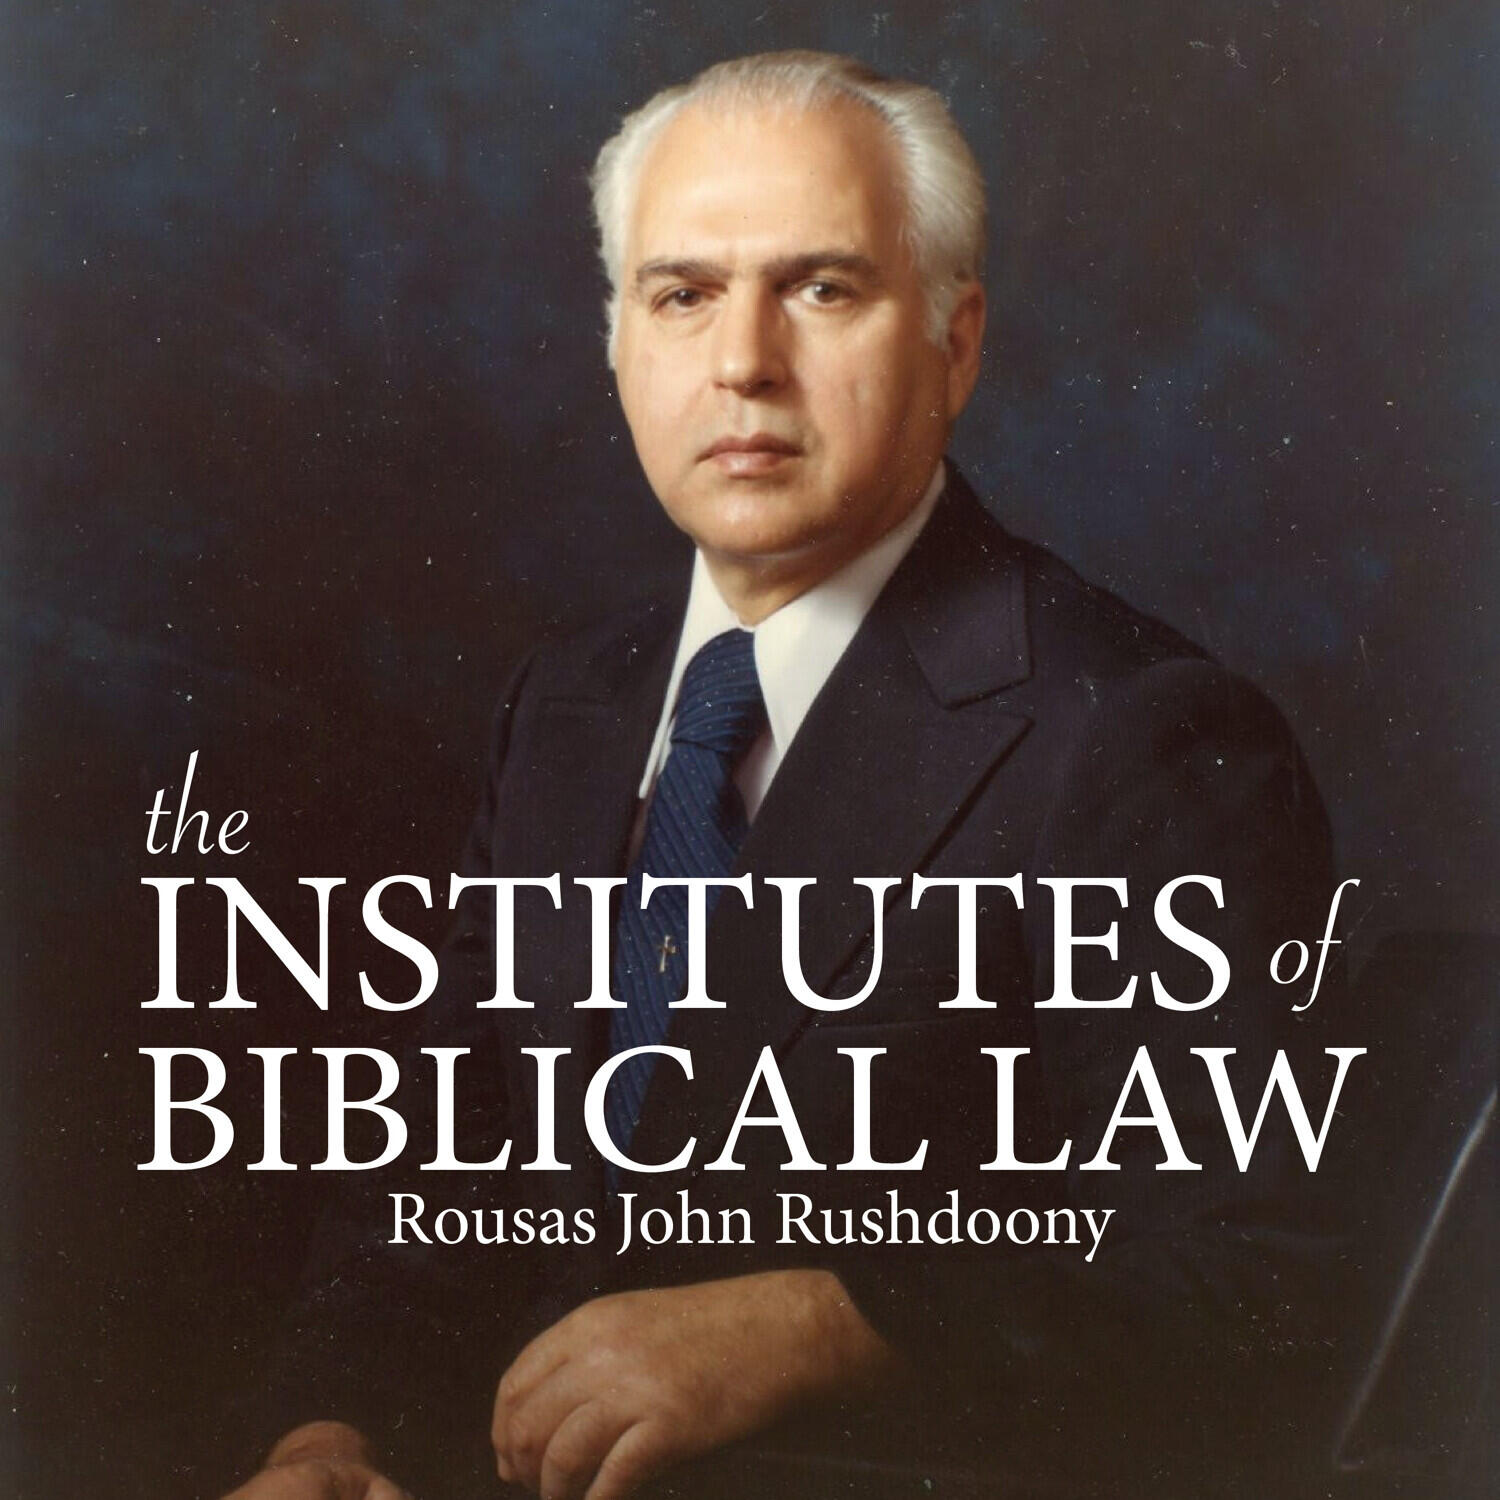 The Institutes of Biblical Law